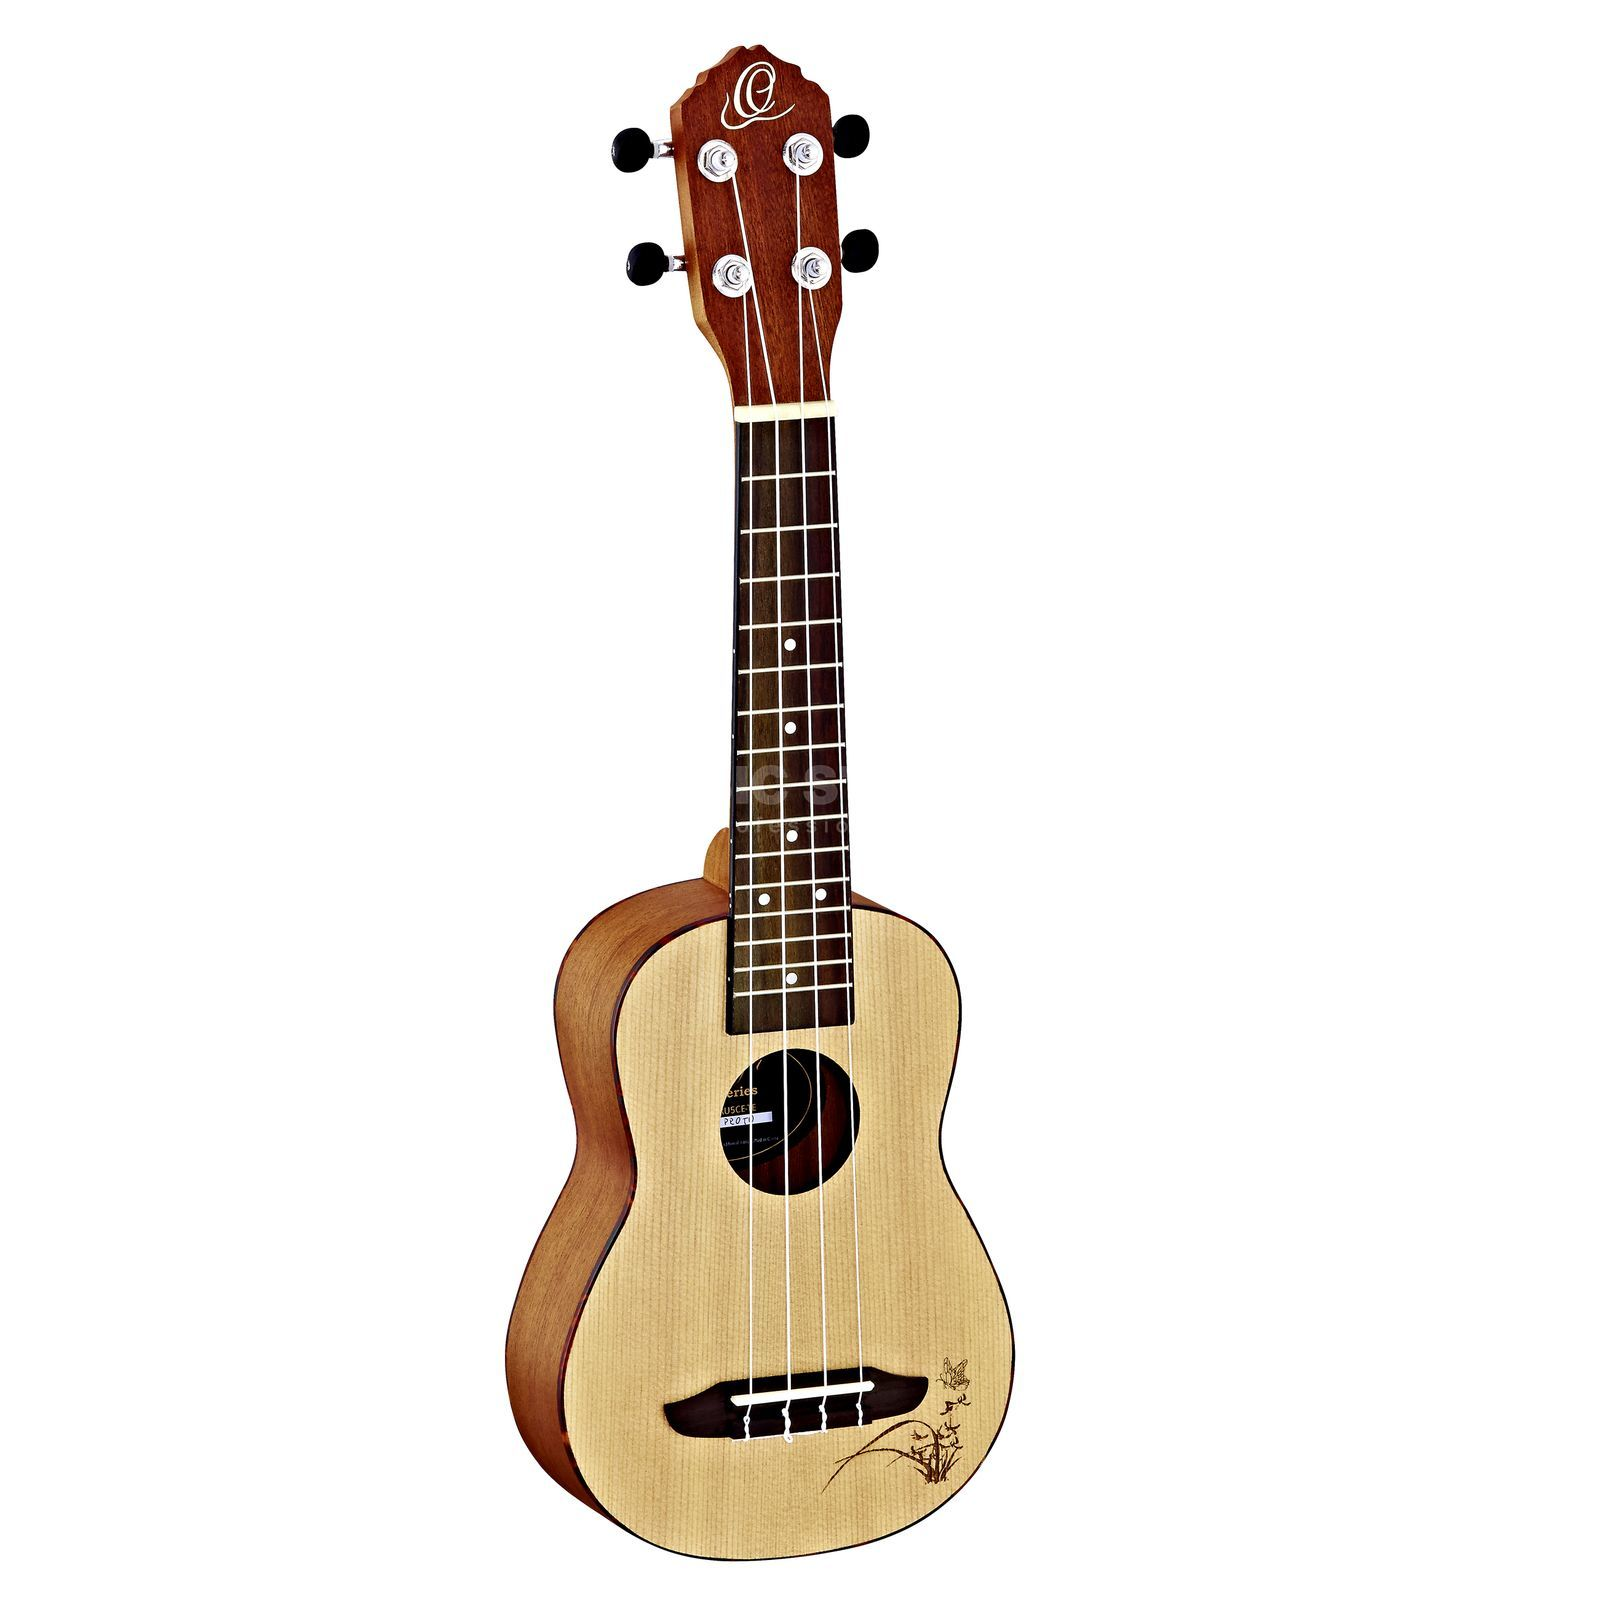 Ortega RU5-SO Soprano Ukulele Natural Product Image